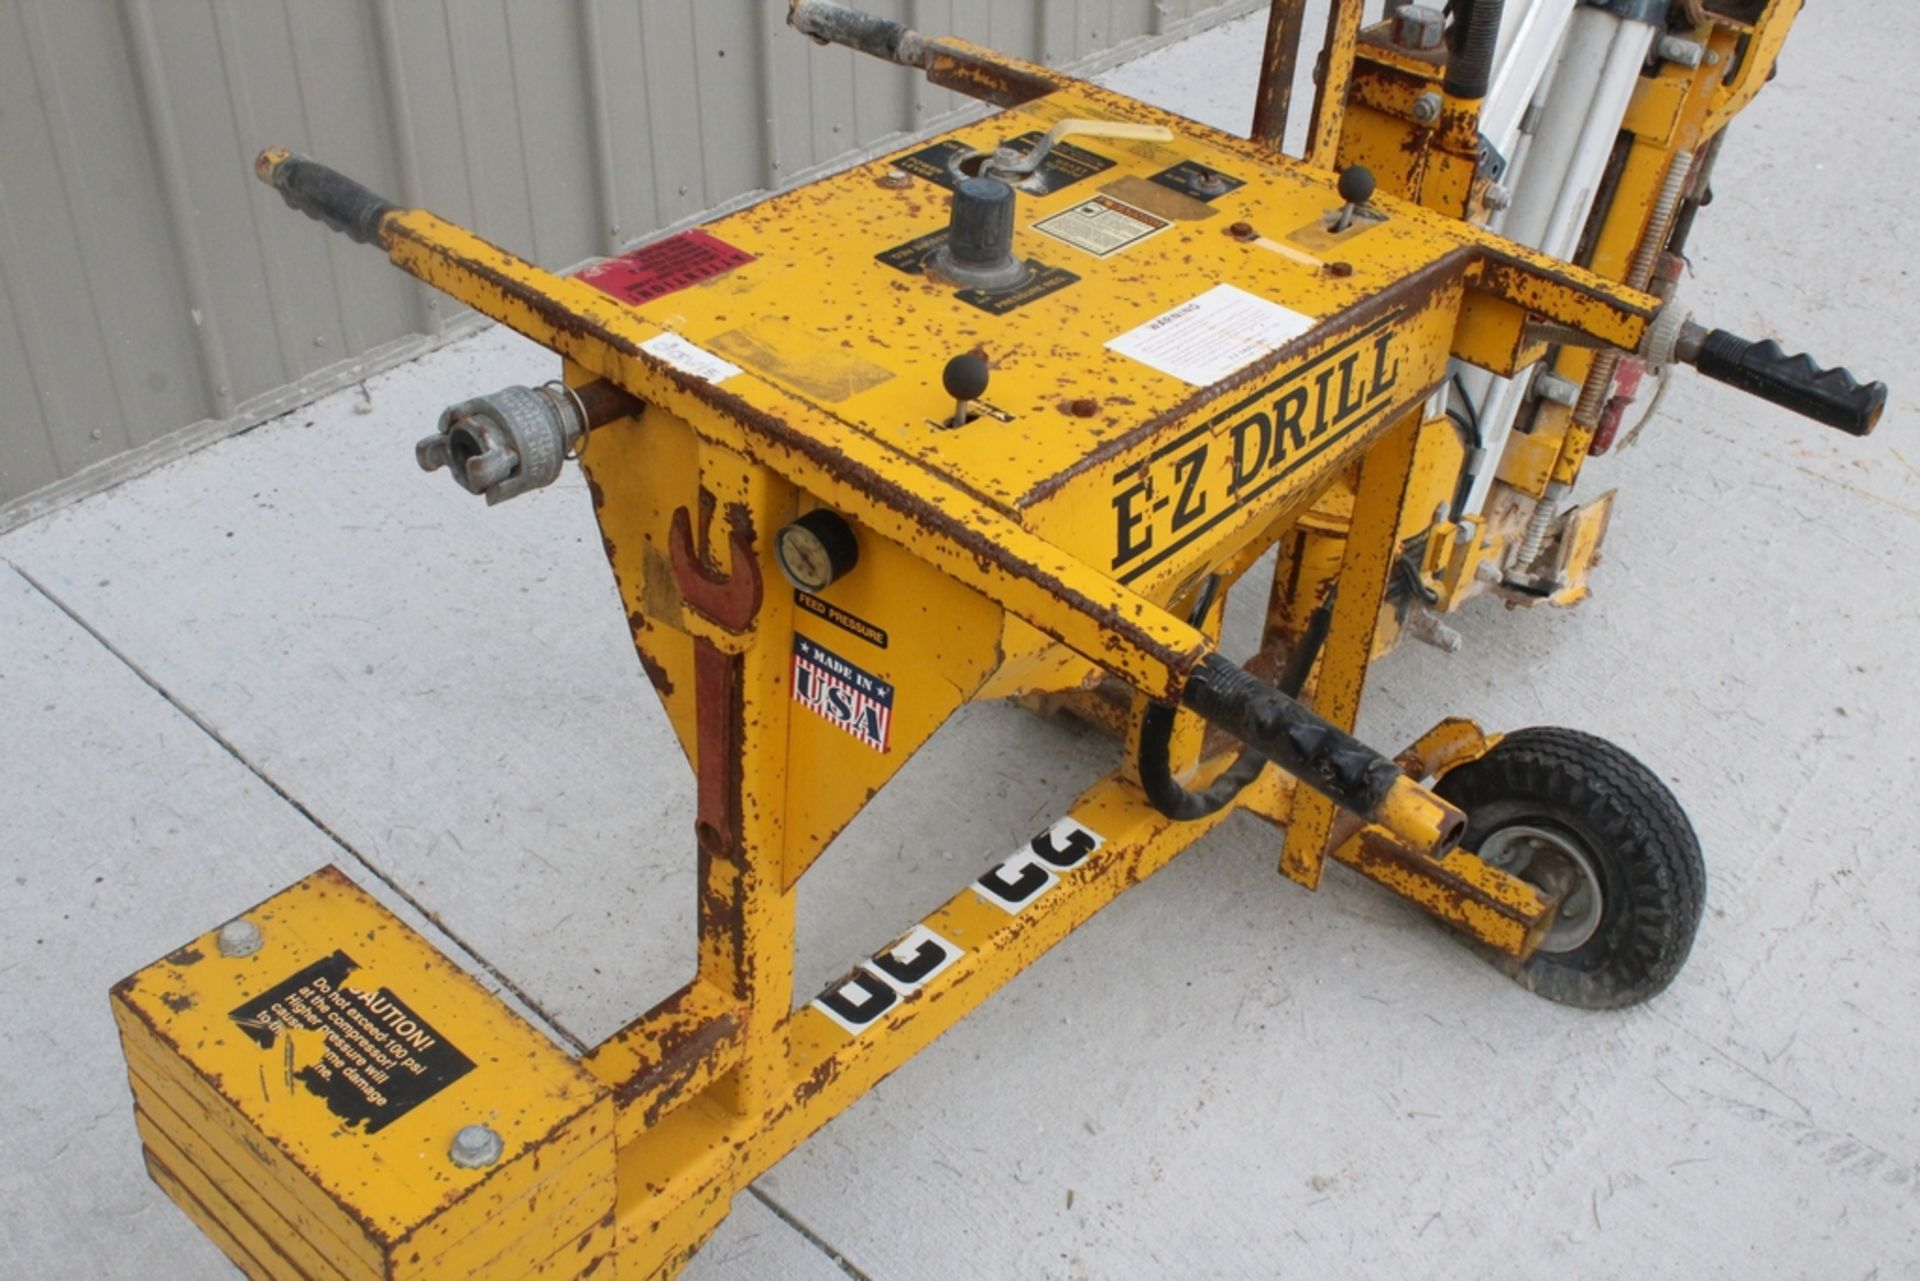 EZ-DRILL HORIZONTAL REBAR DRILL MODEL 210B, S/N 2075, WITH CORE DRILL ATTACHMENT - Image 2 of 5